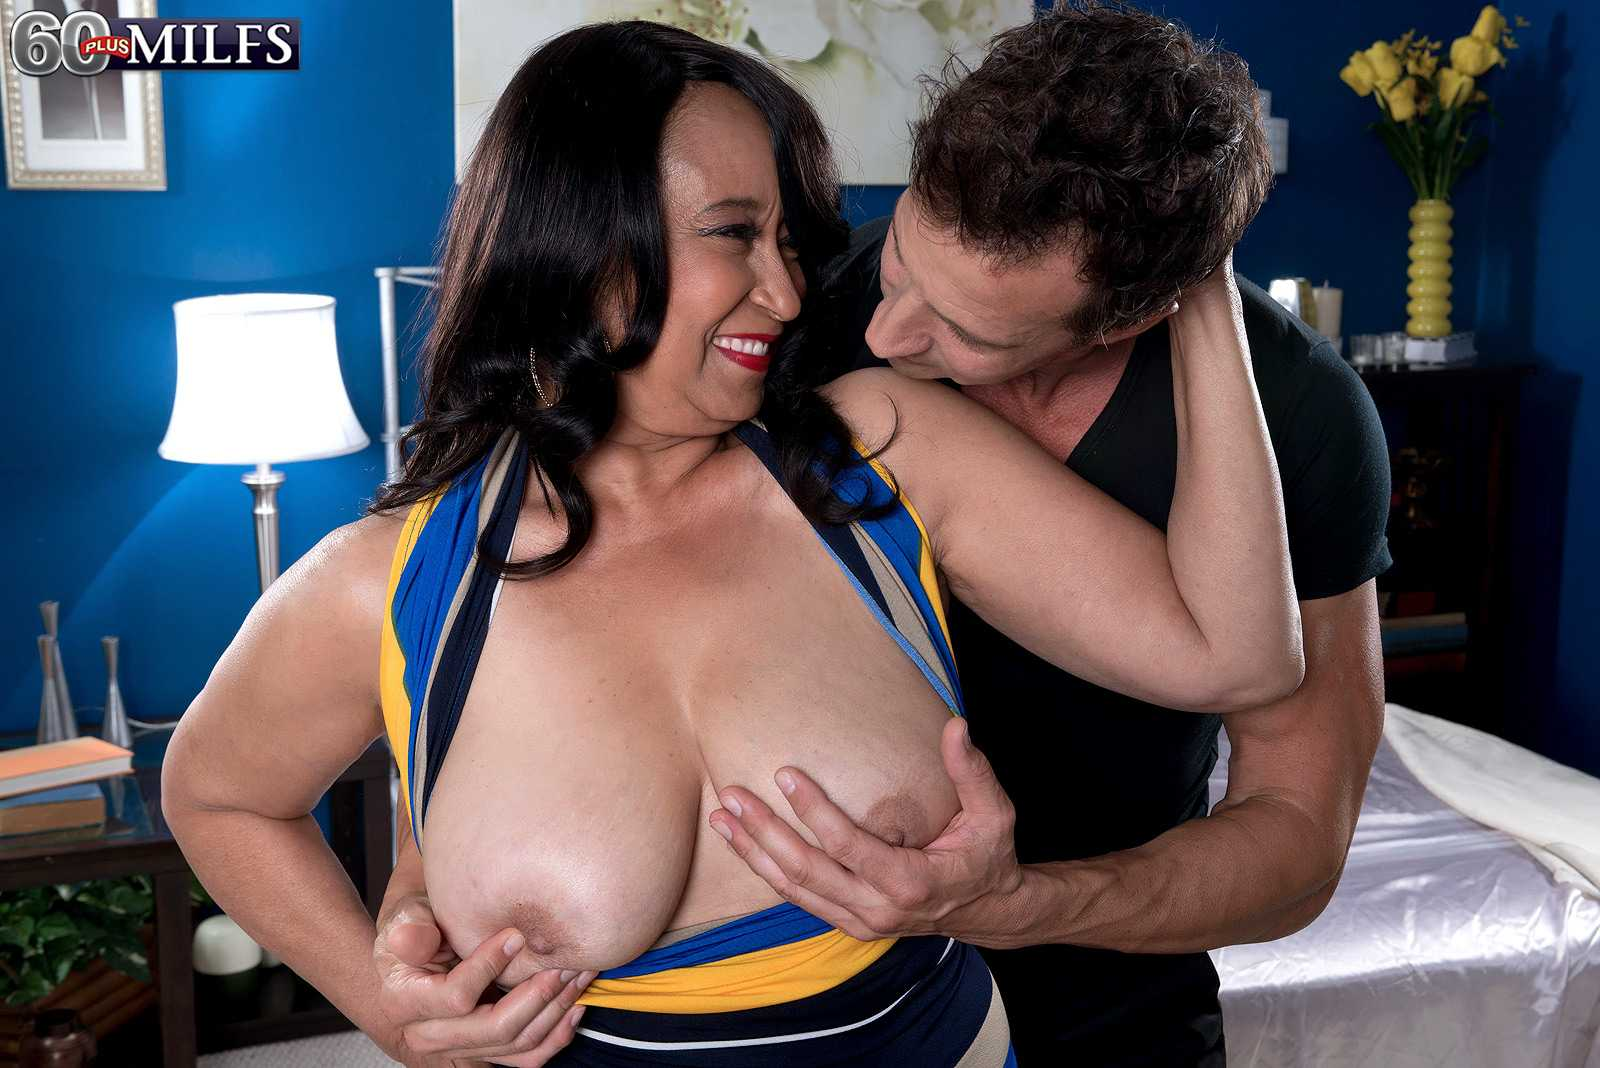 First Time on 60plusmilfs.com for Rochelle hot